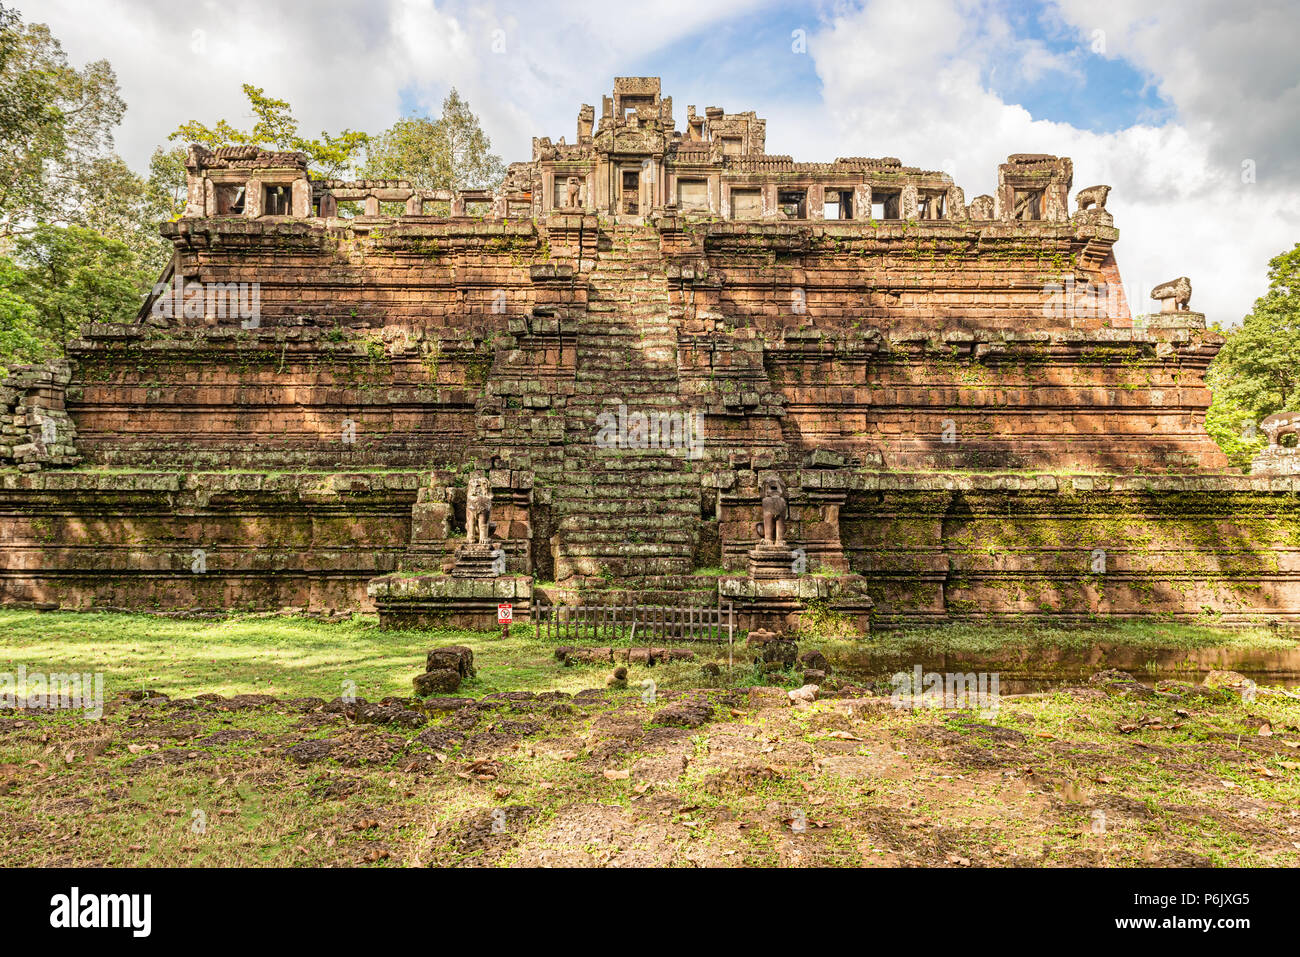 Phimeanakas temple at Angkor, Cambodia, is a Hindu temple from the 10th century, in shape of three tier pyramid as a Hindu temple. On top of the pyram - Stock Image